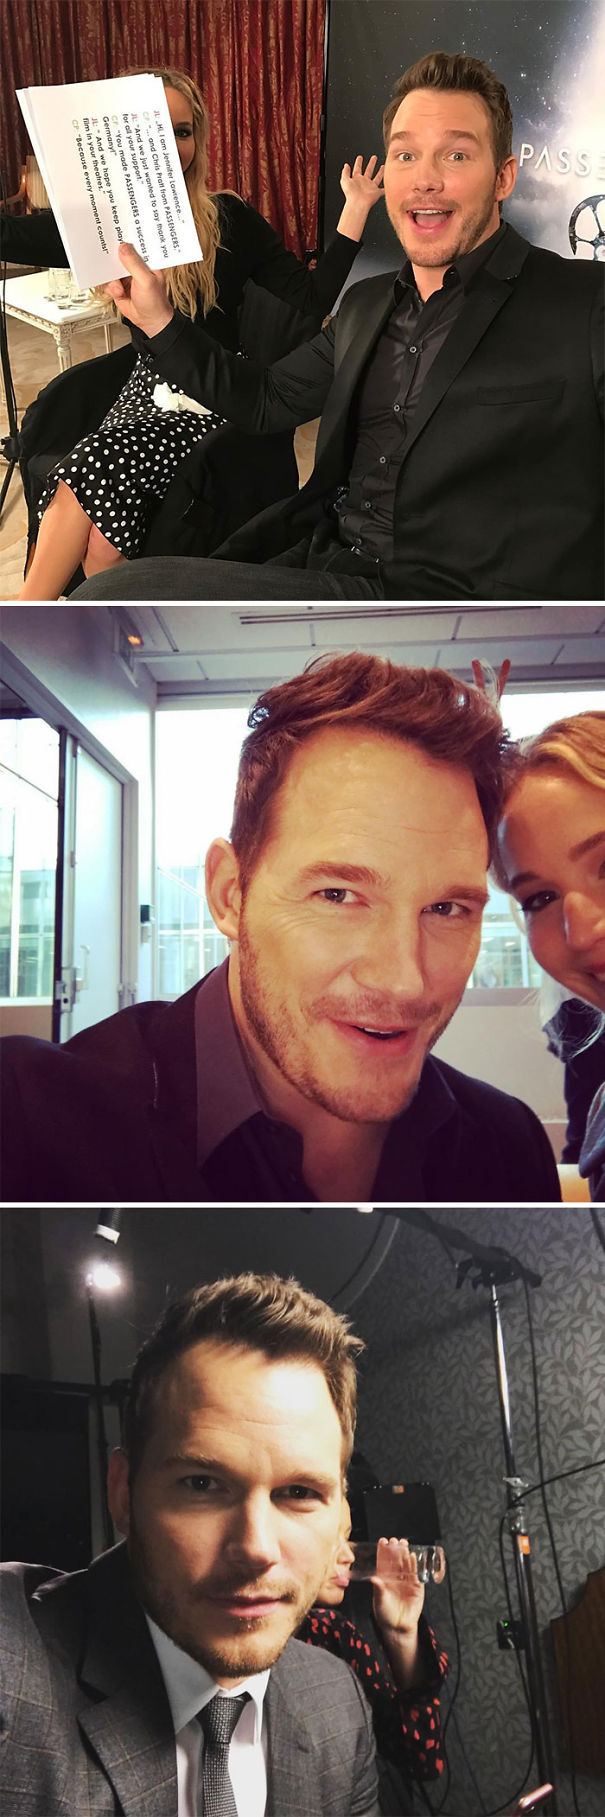 Chris Pratt Posted These Pics To His Instagram After Fans Asked Him To Hang Out With Jennifer Lawrence